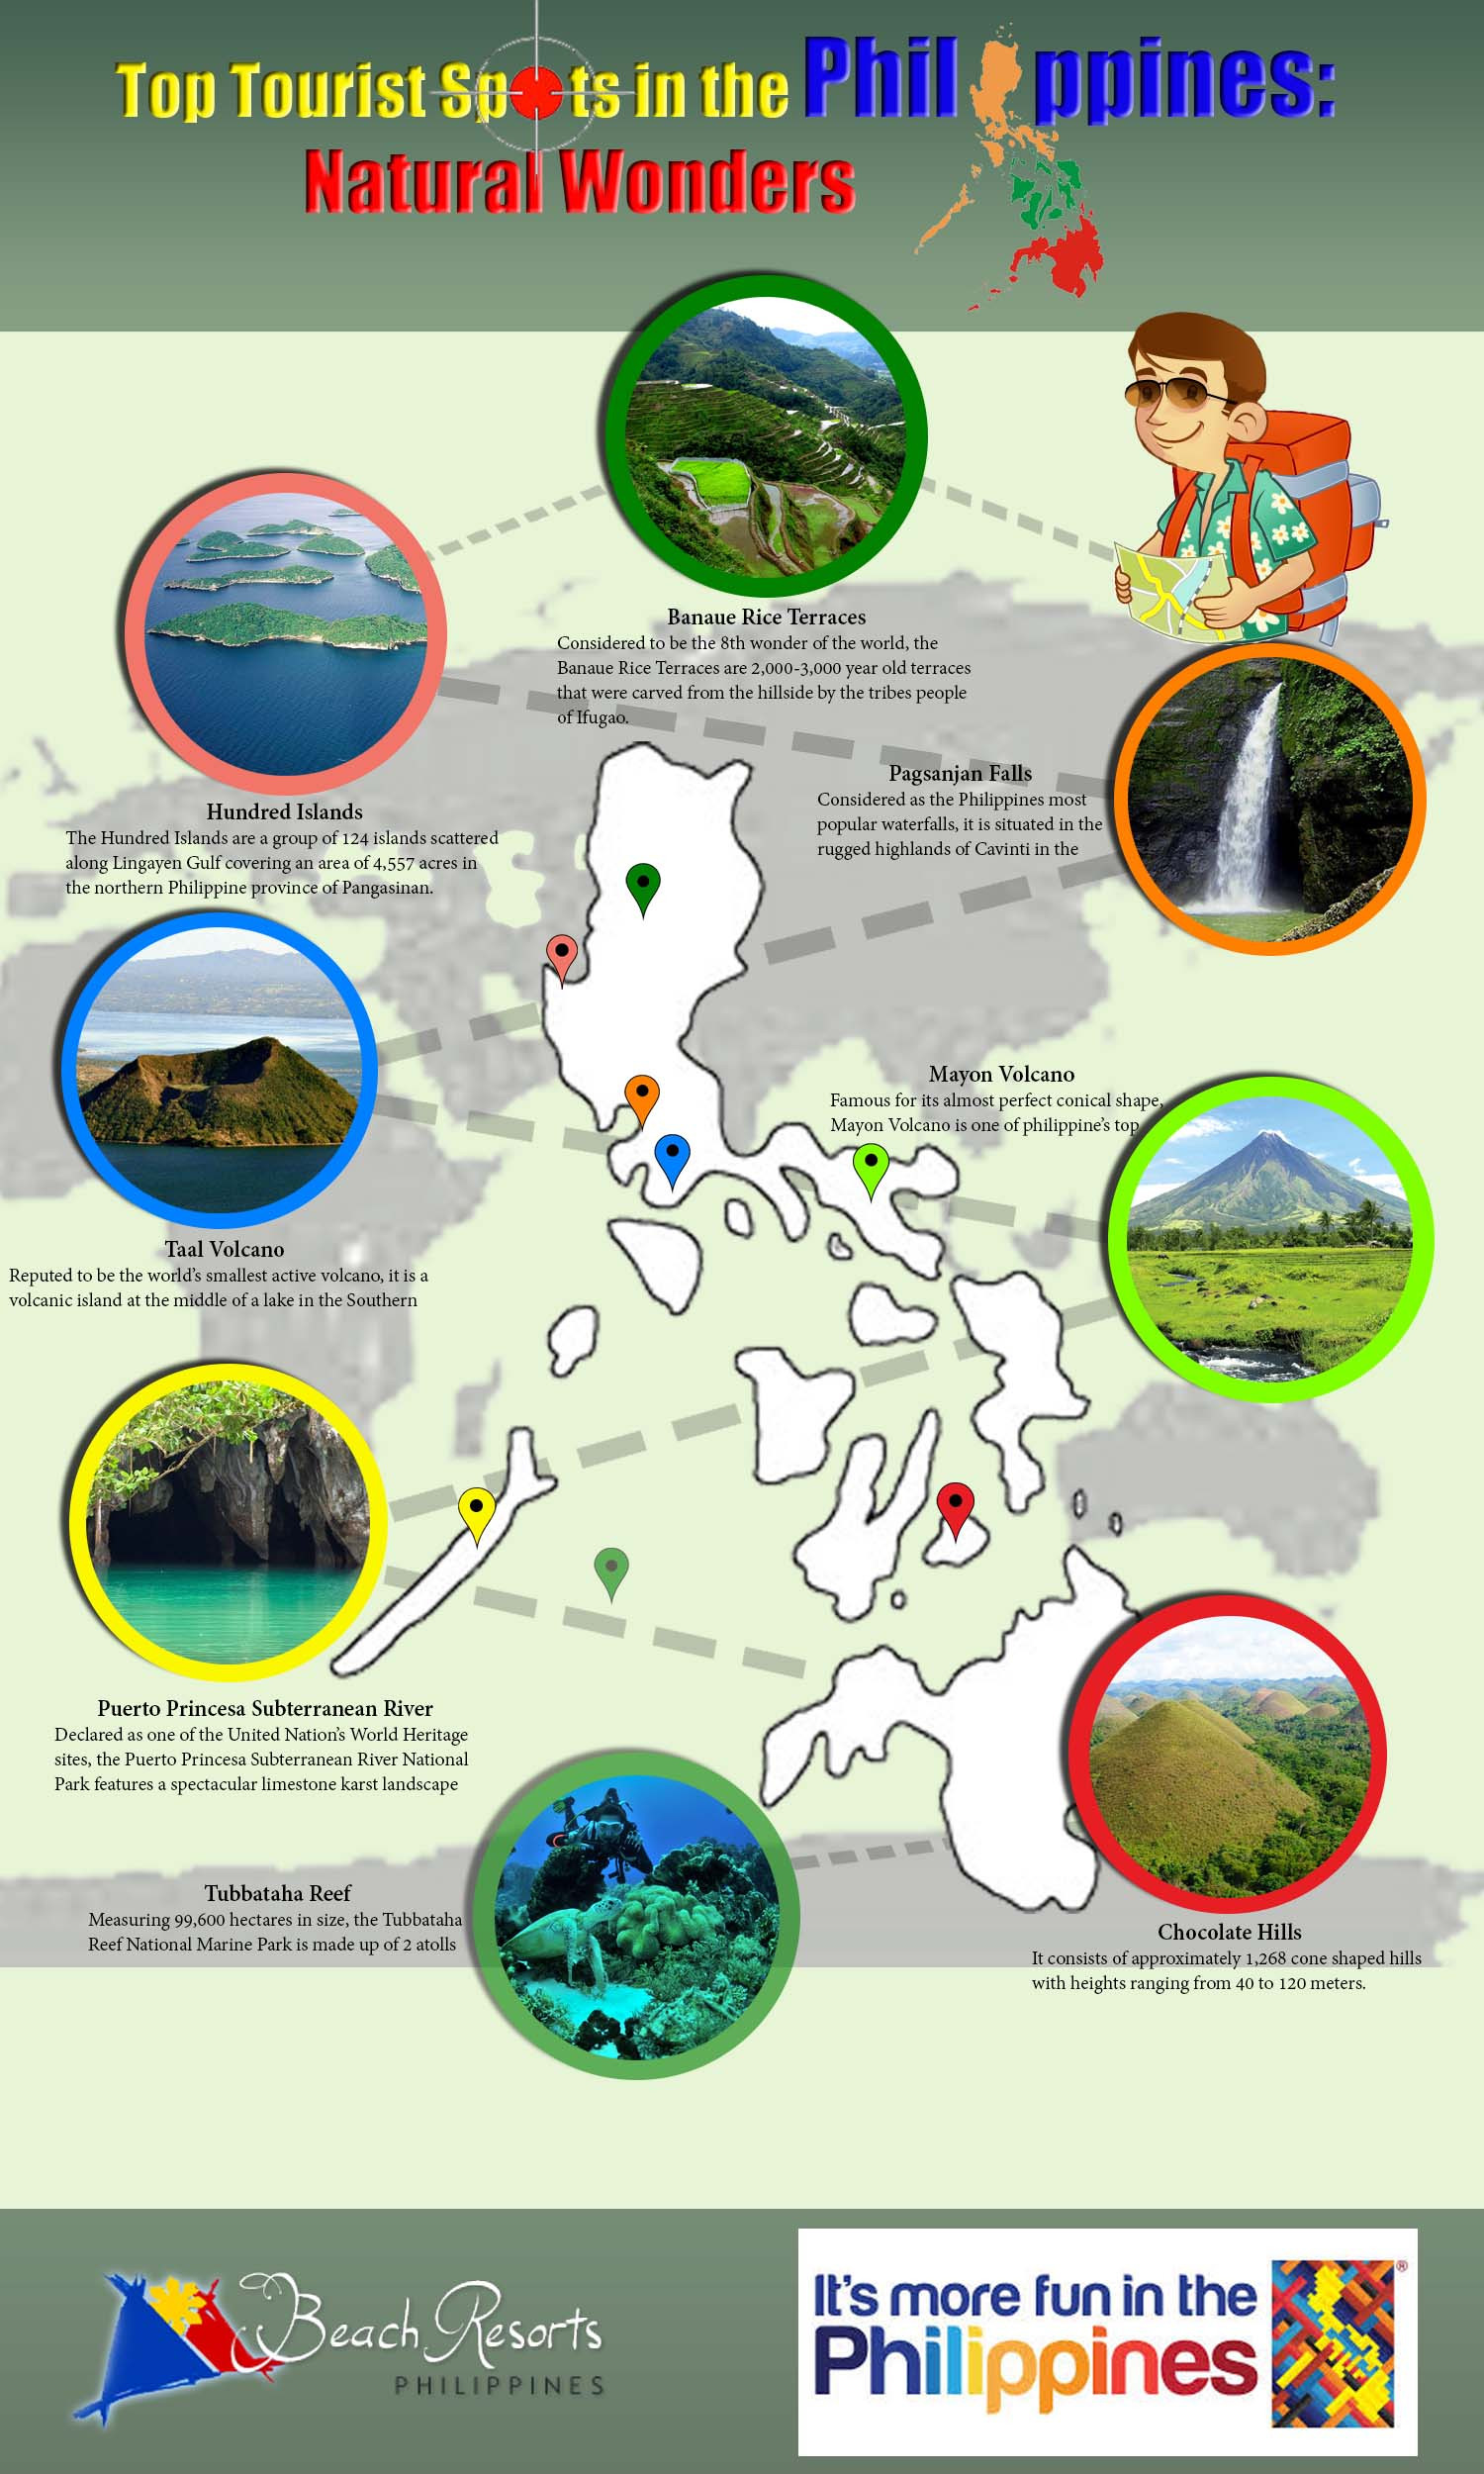 Top Tourist Spots in the Philippines: Natural Wonders Infographic